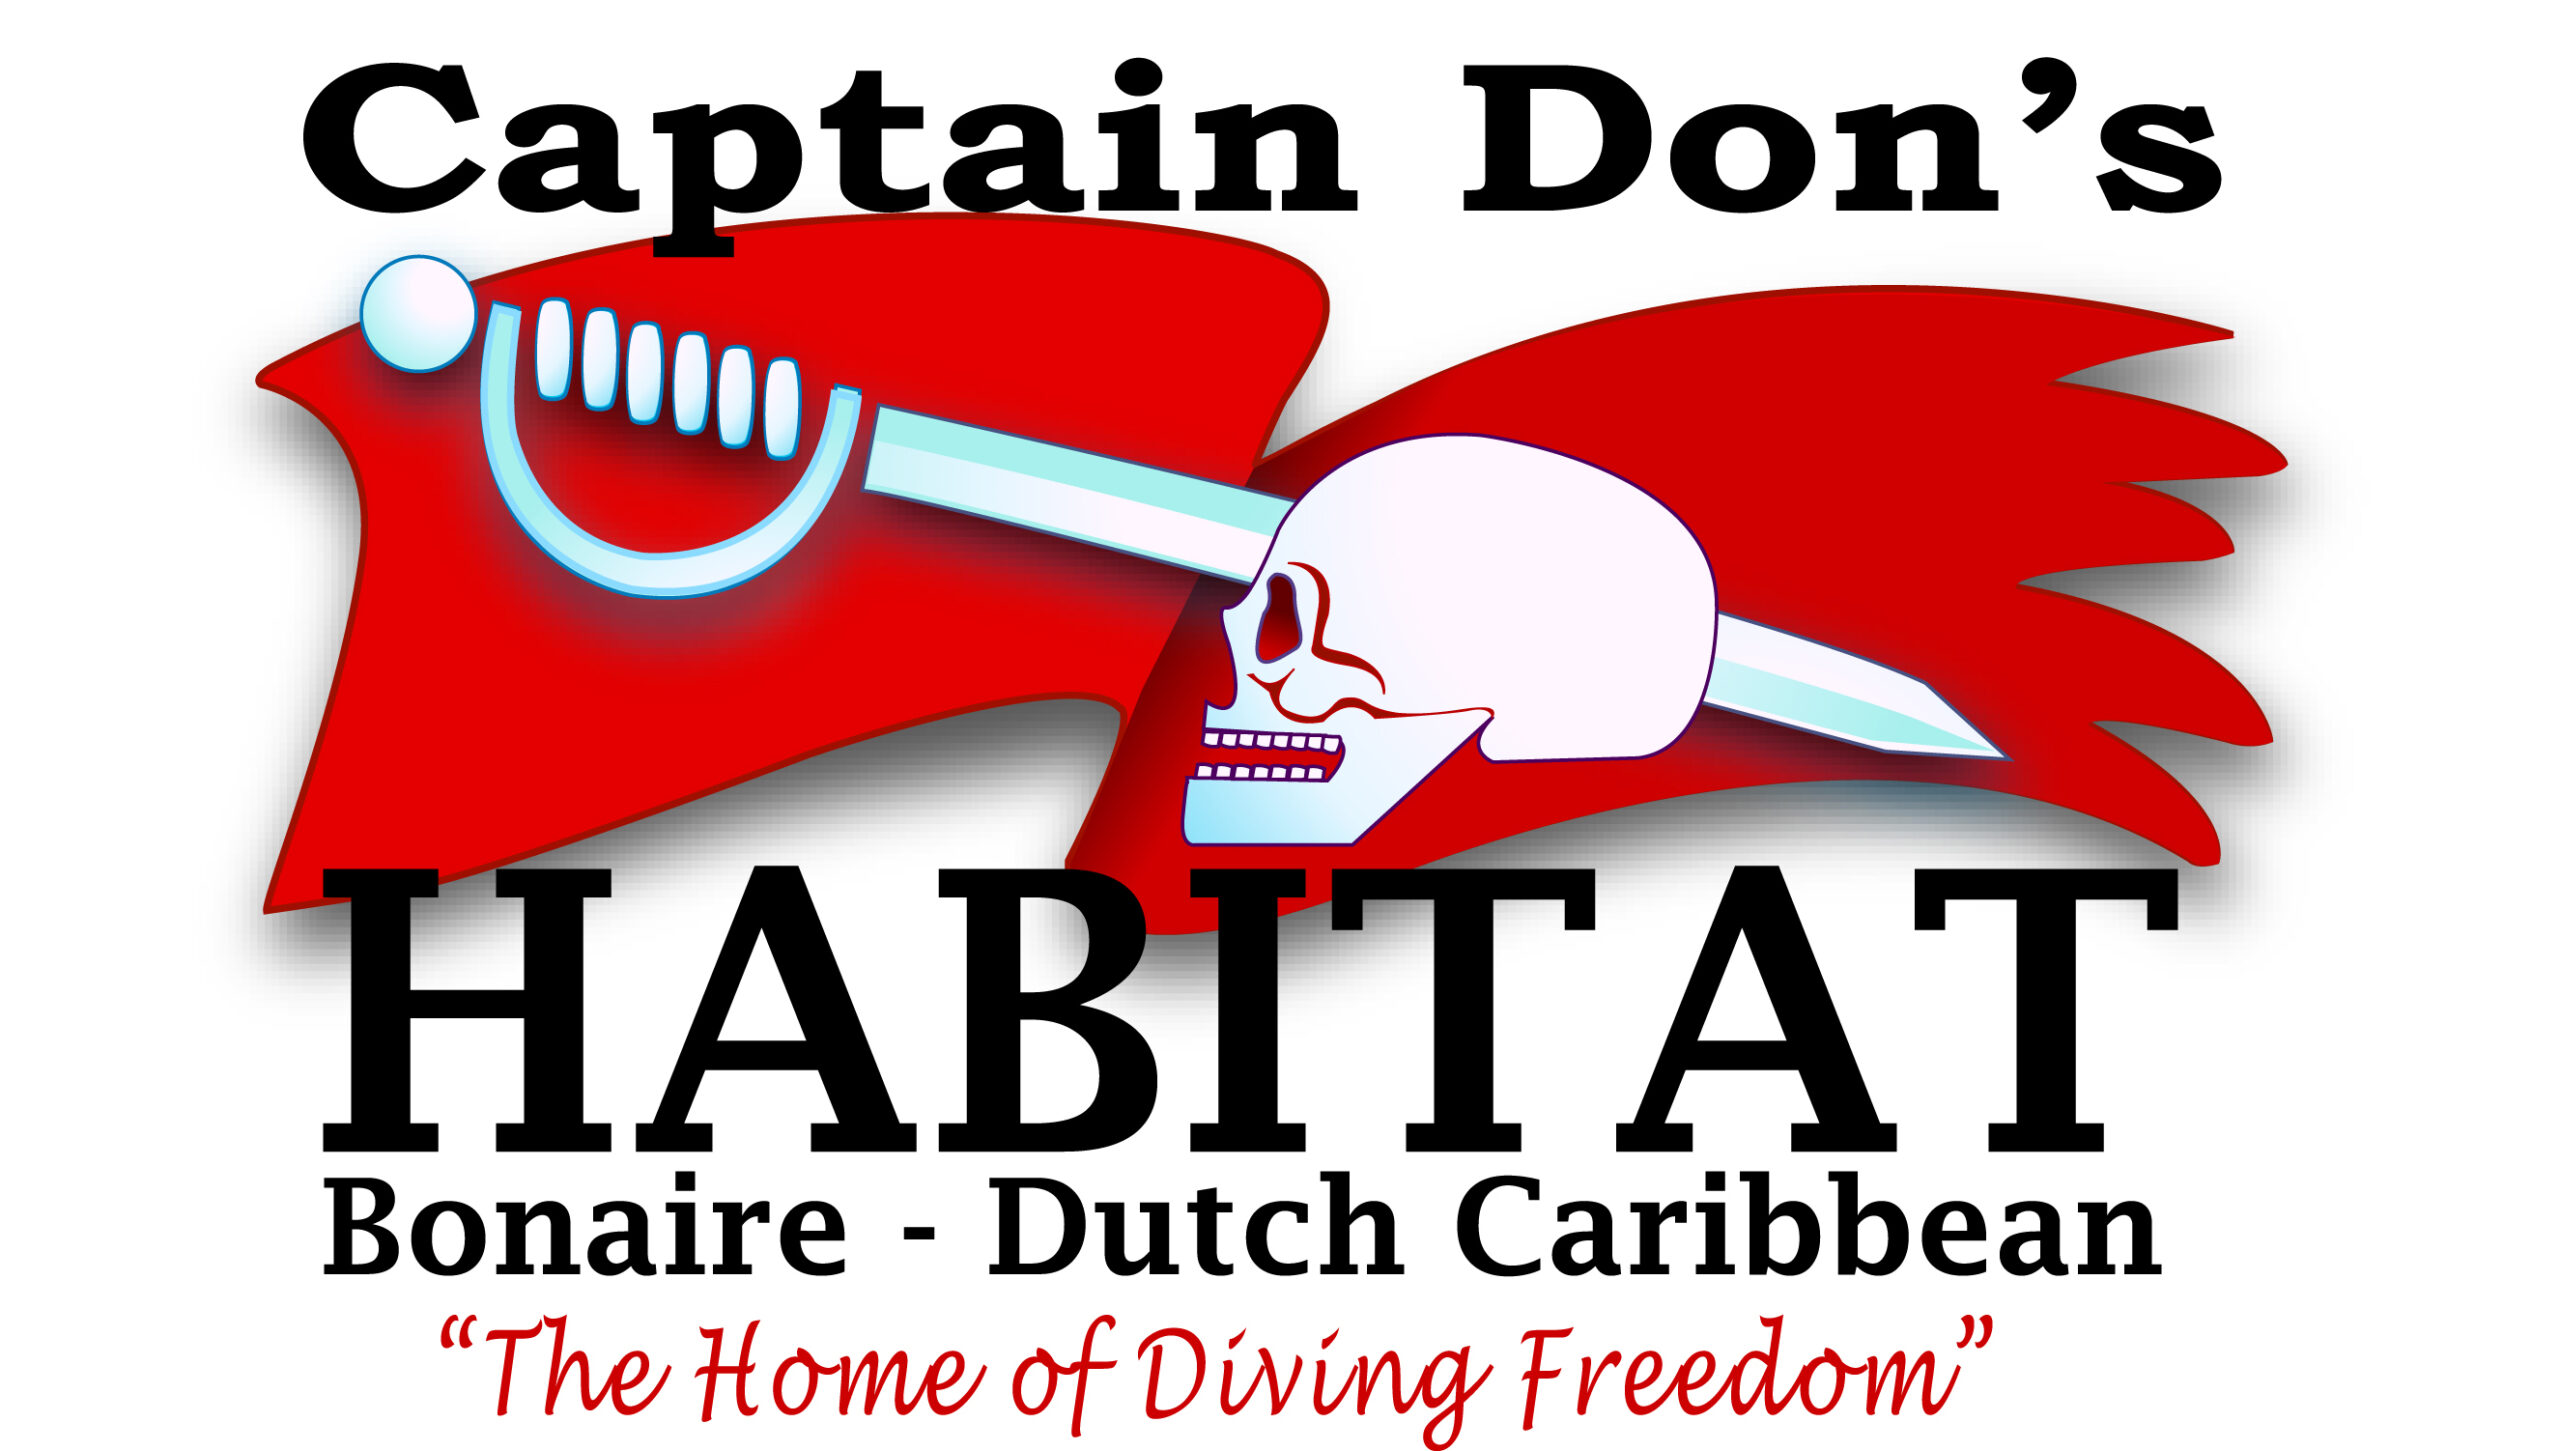 Captain Don's Habitat